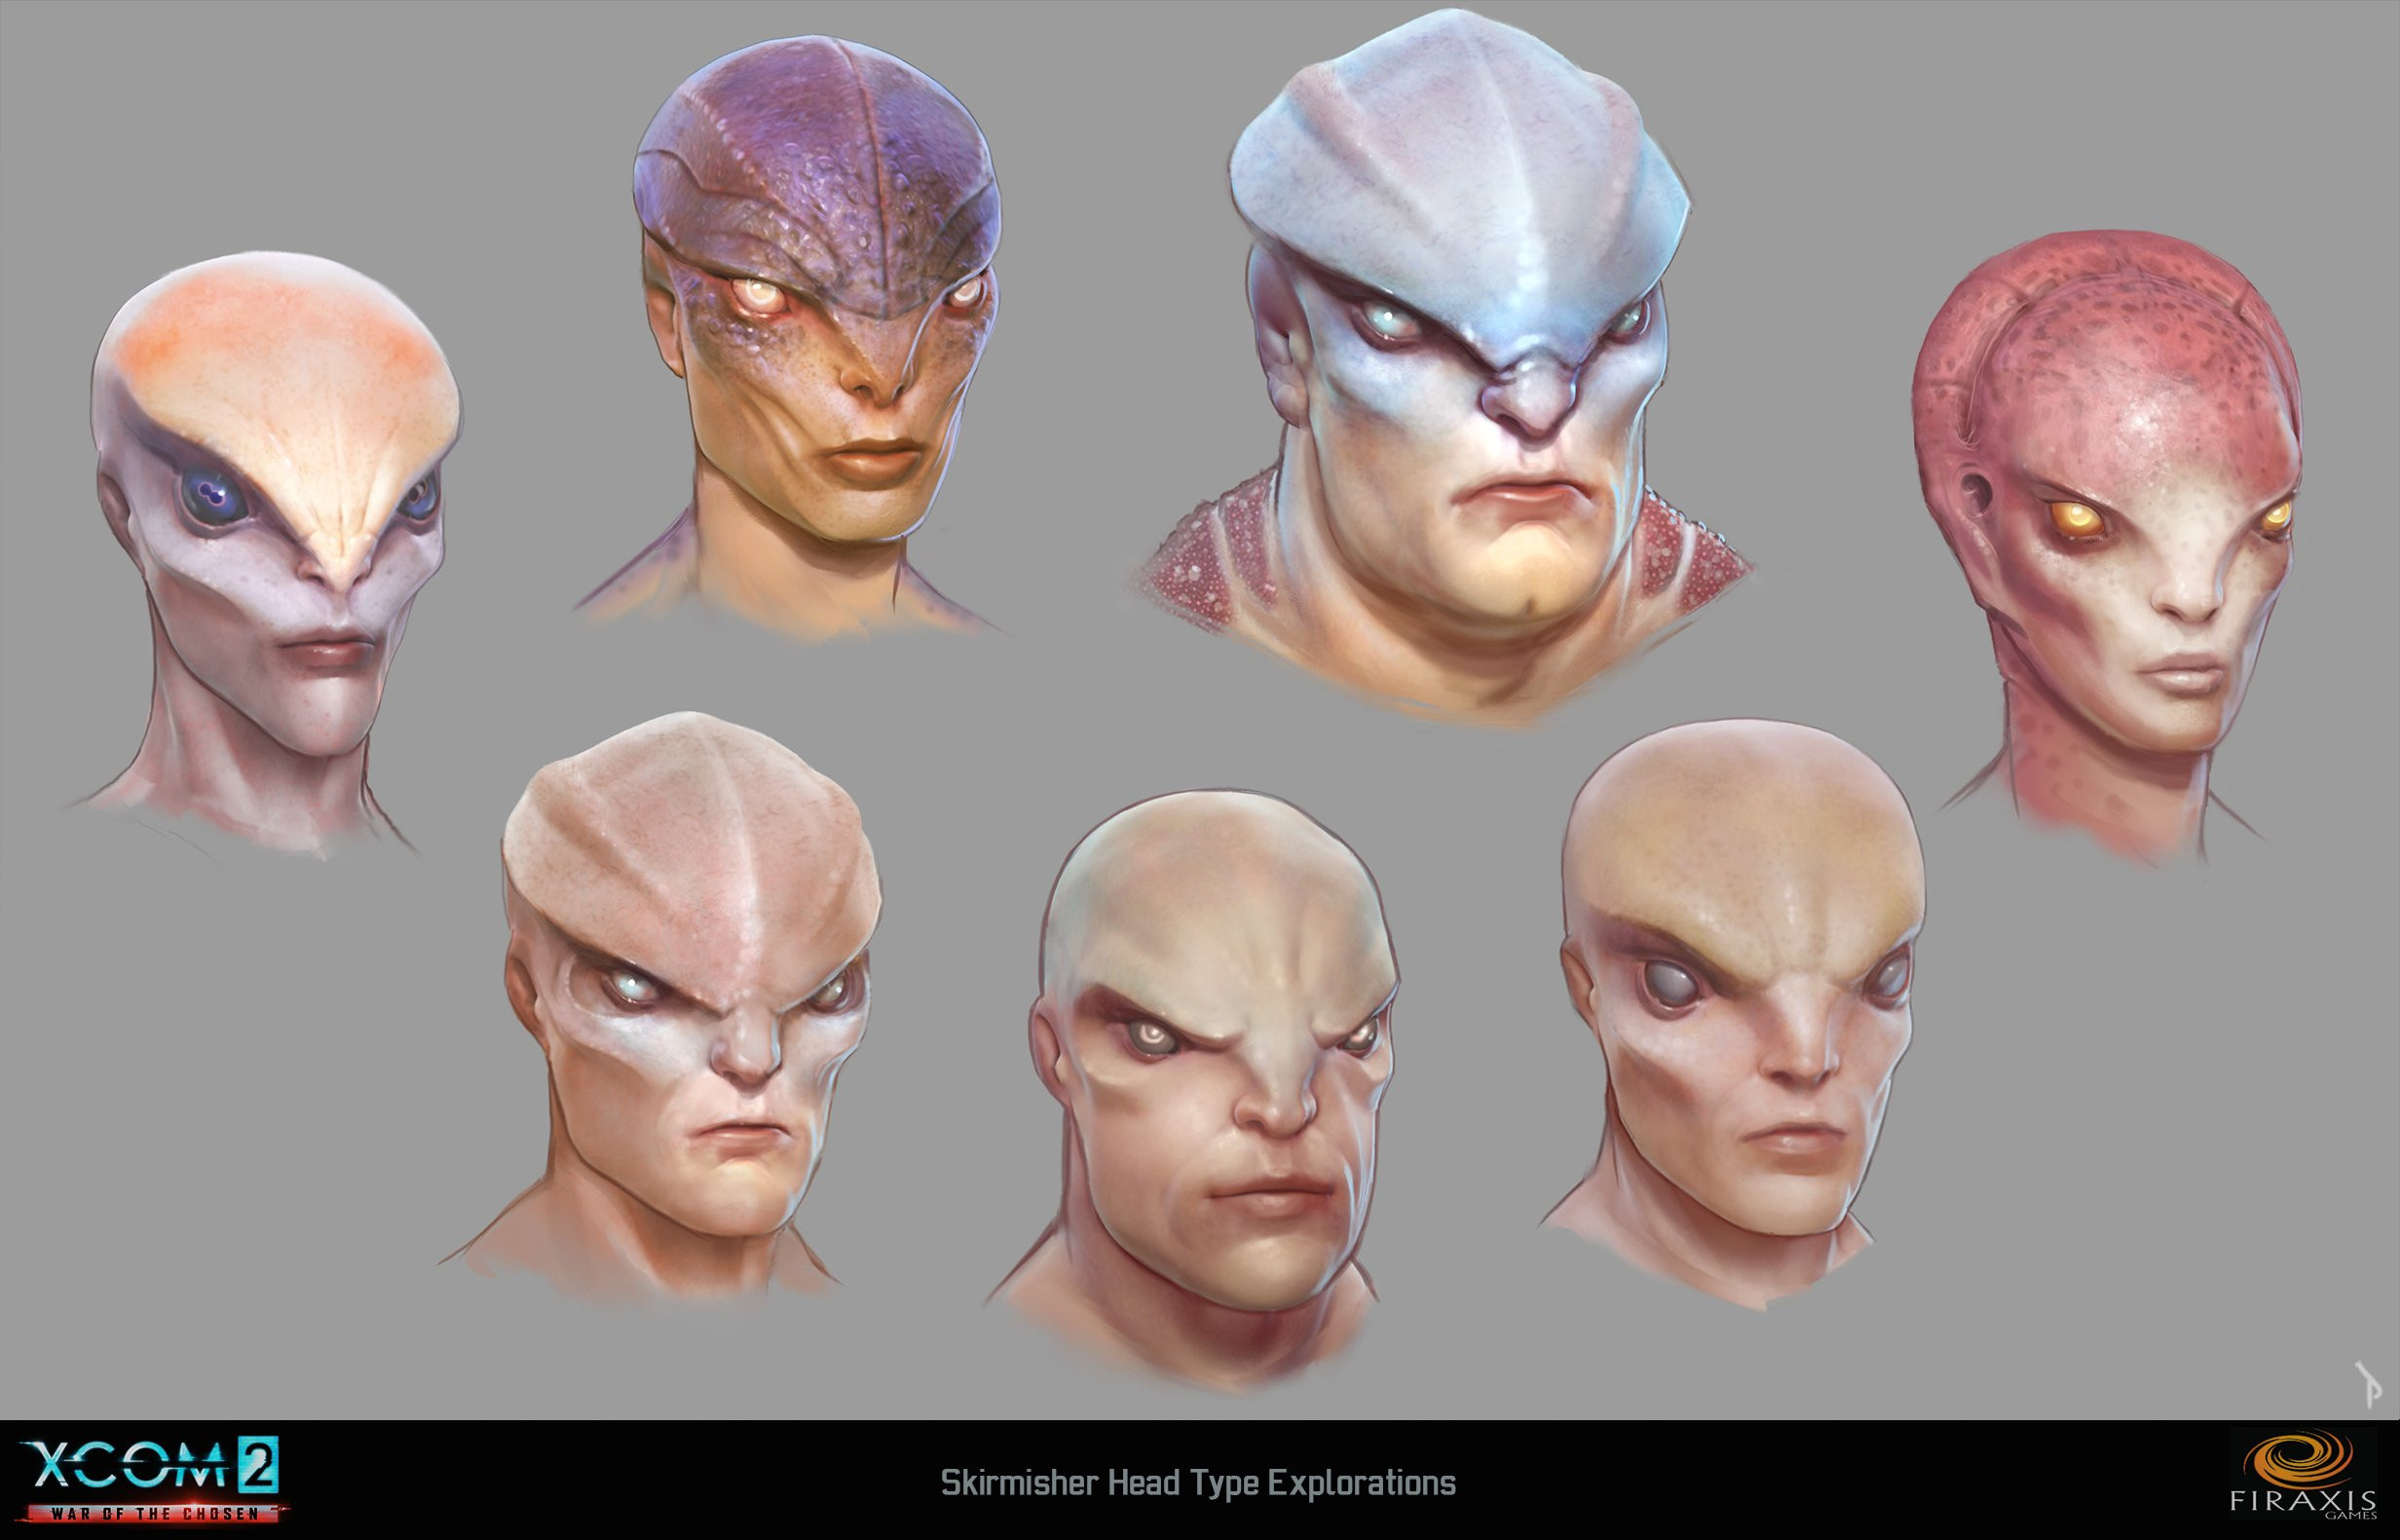 Skirmisher head type studies